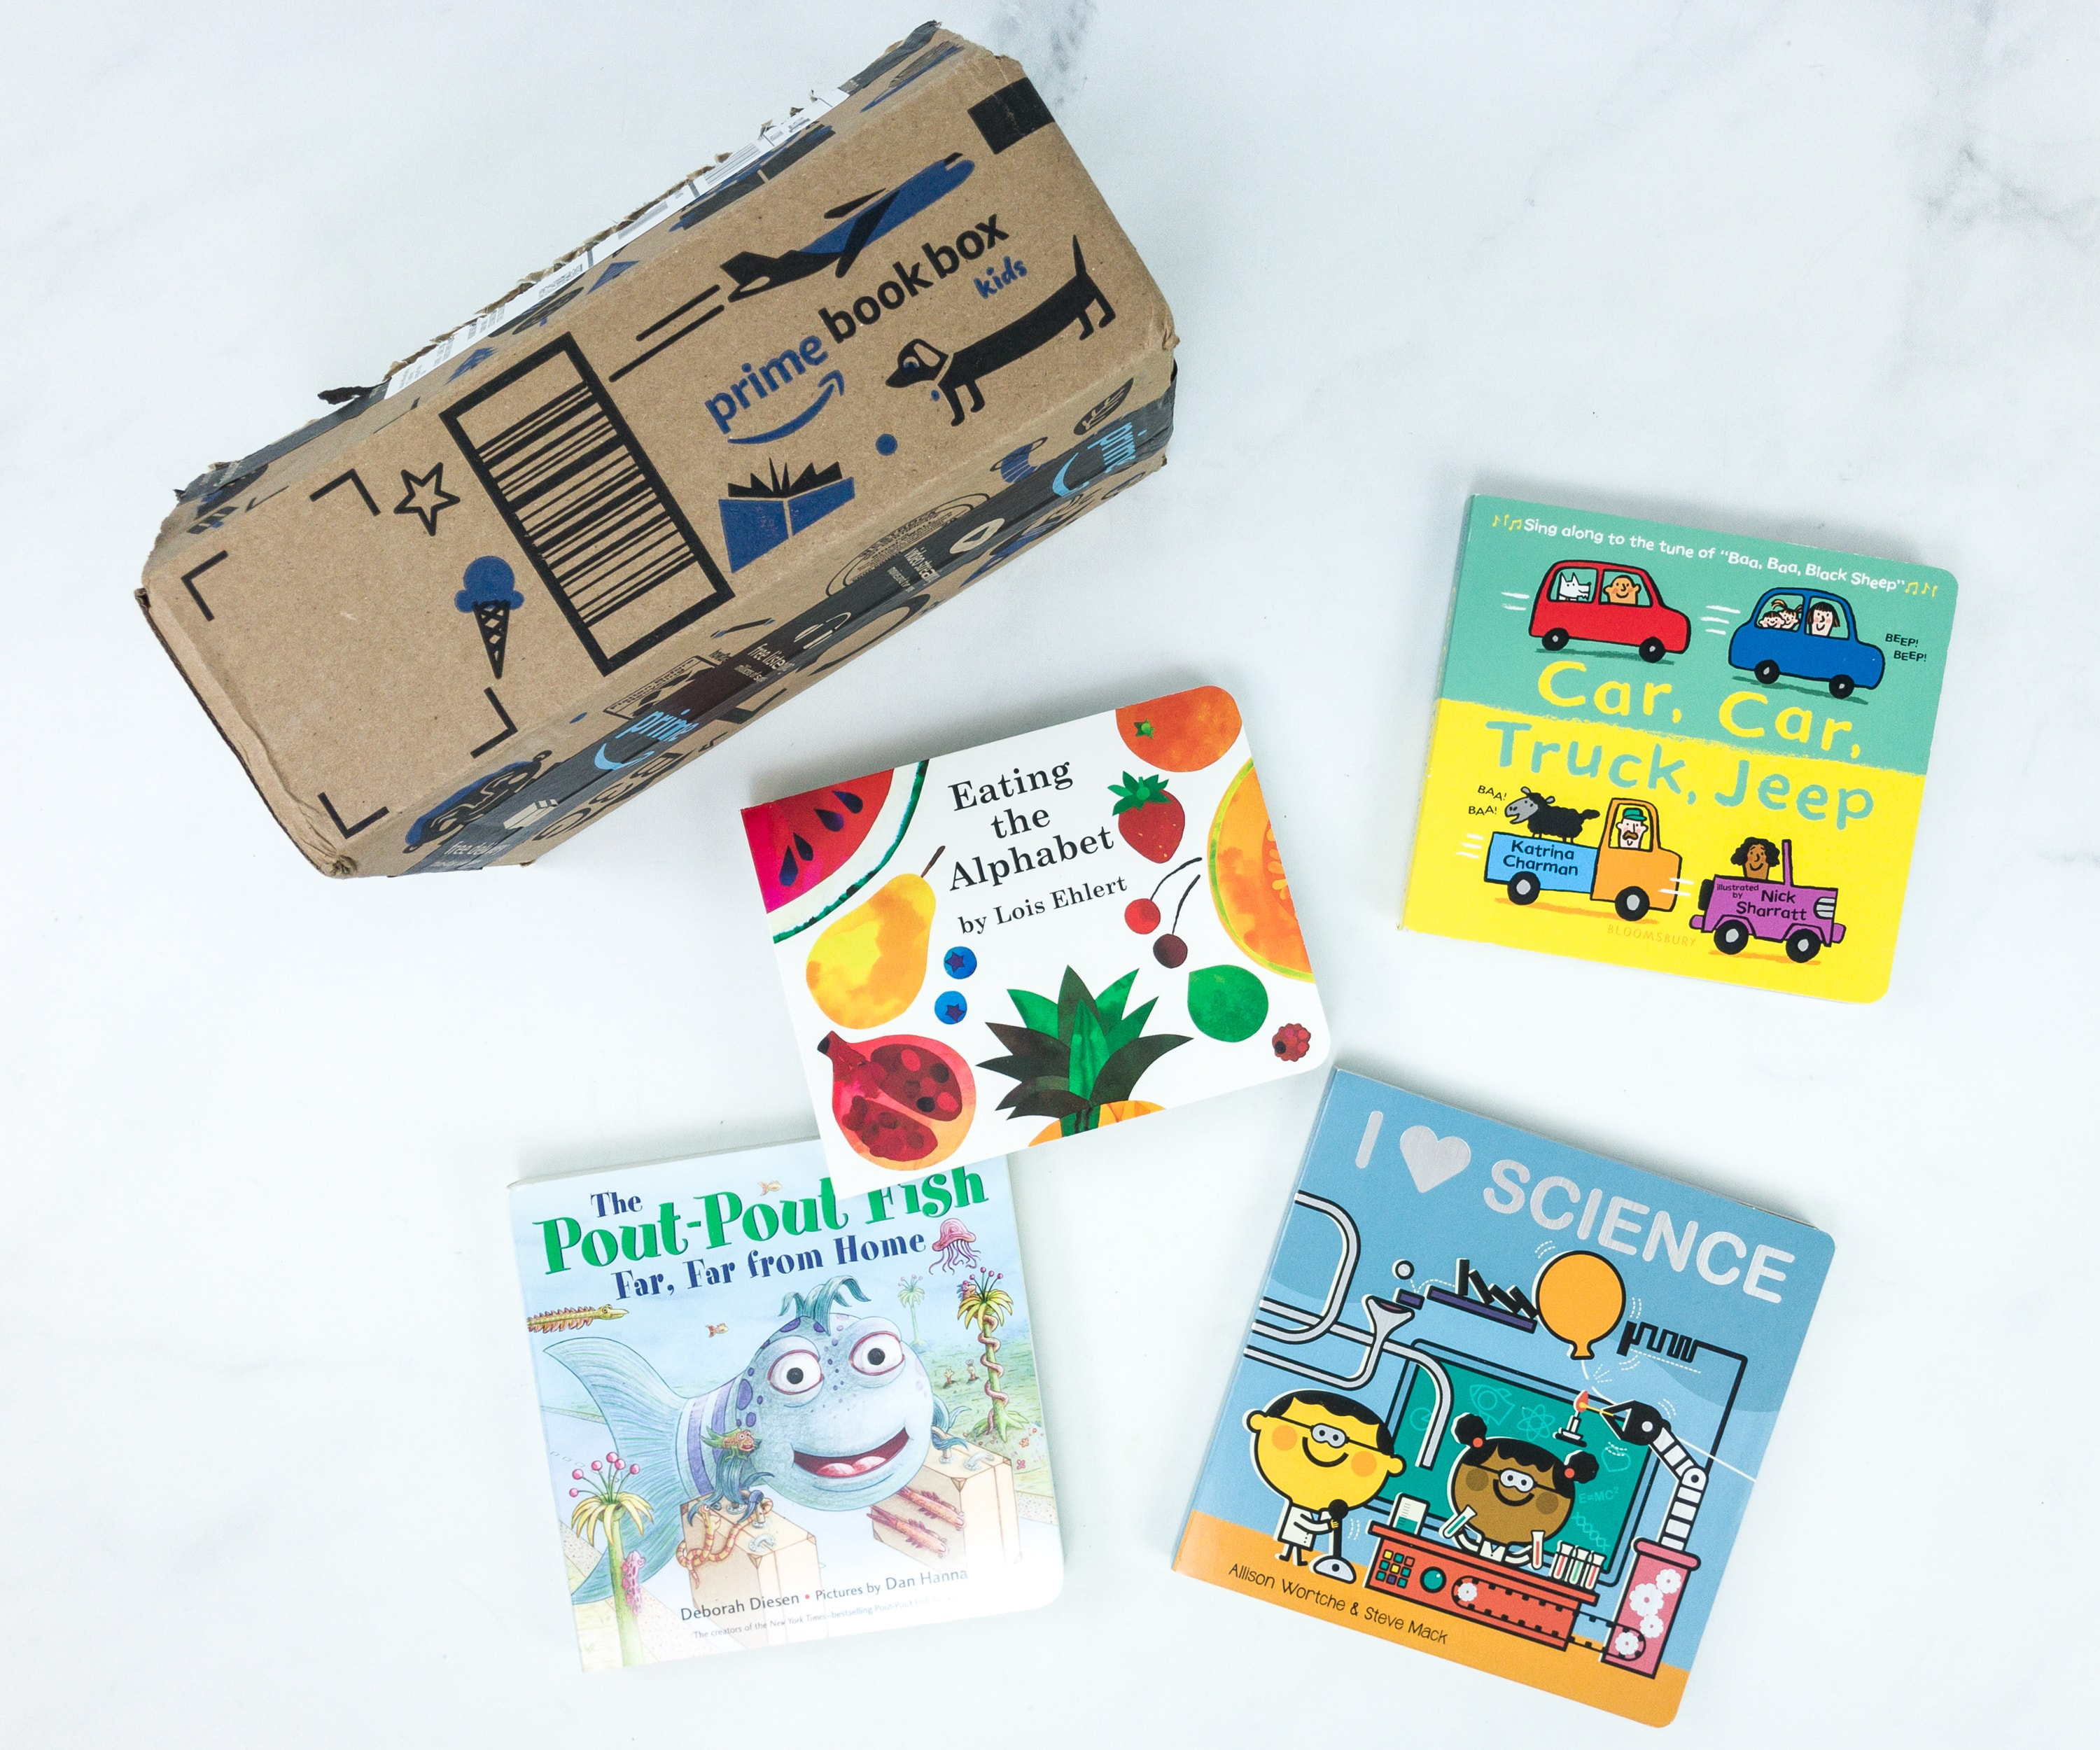 Amazon Prime Book Box Kids Review + Coupon – AGE 3-5 August 2019